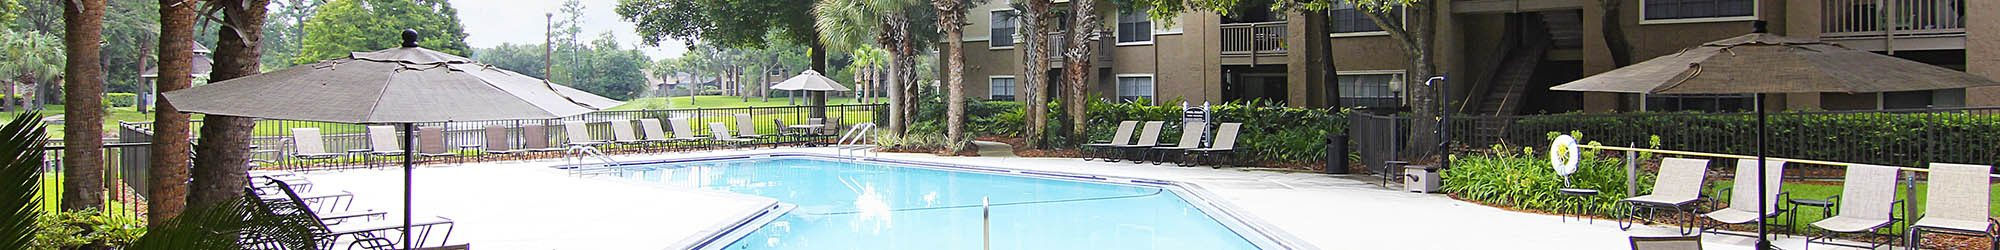 Read what residents of our Jacksonville apartments have to say